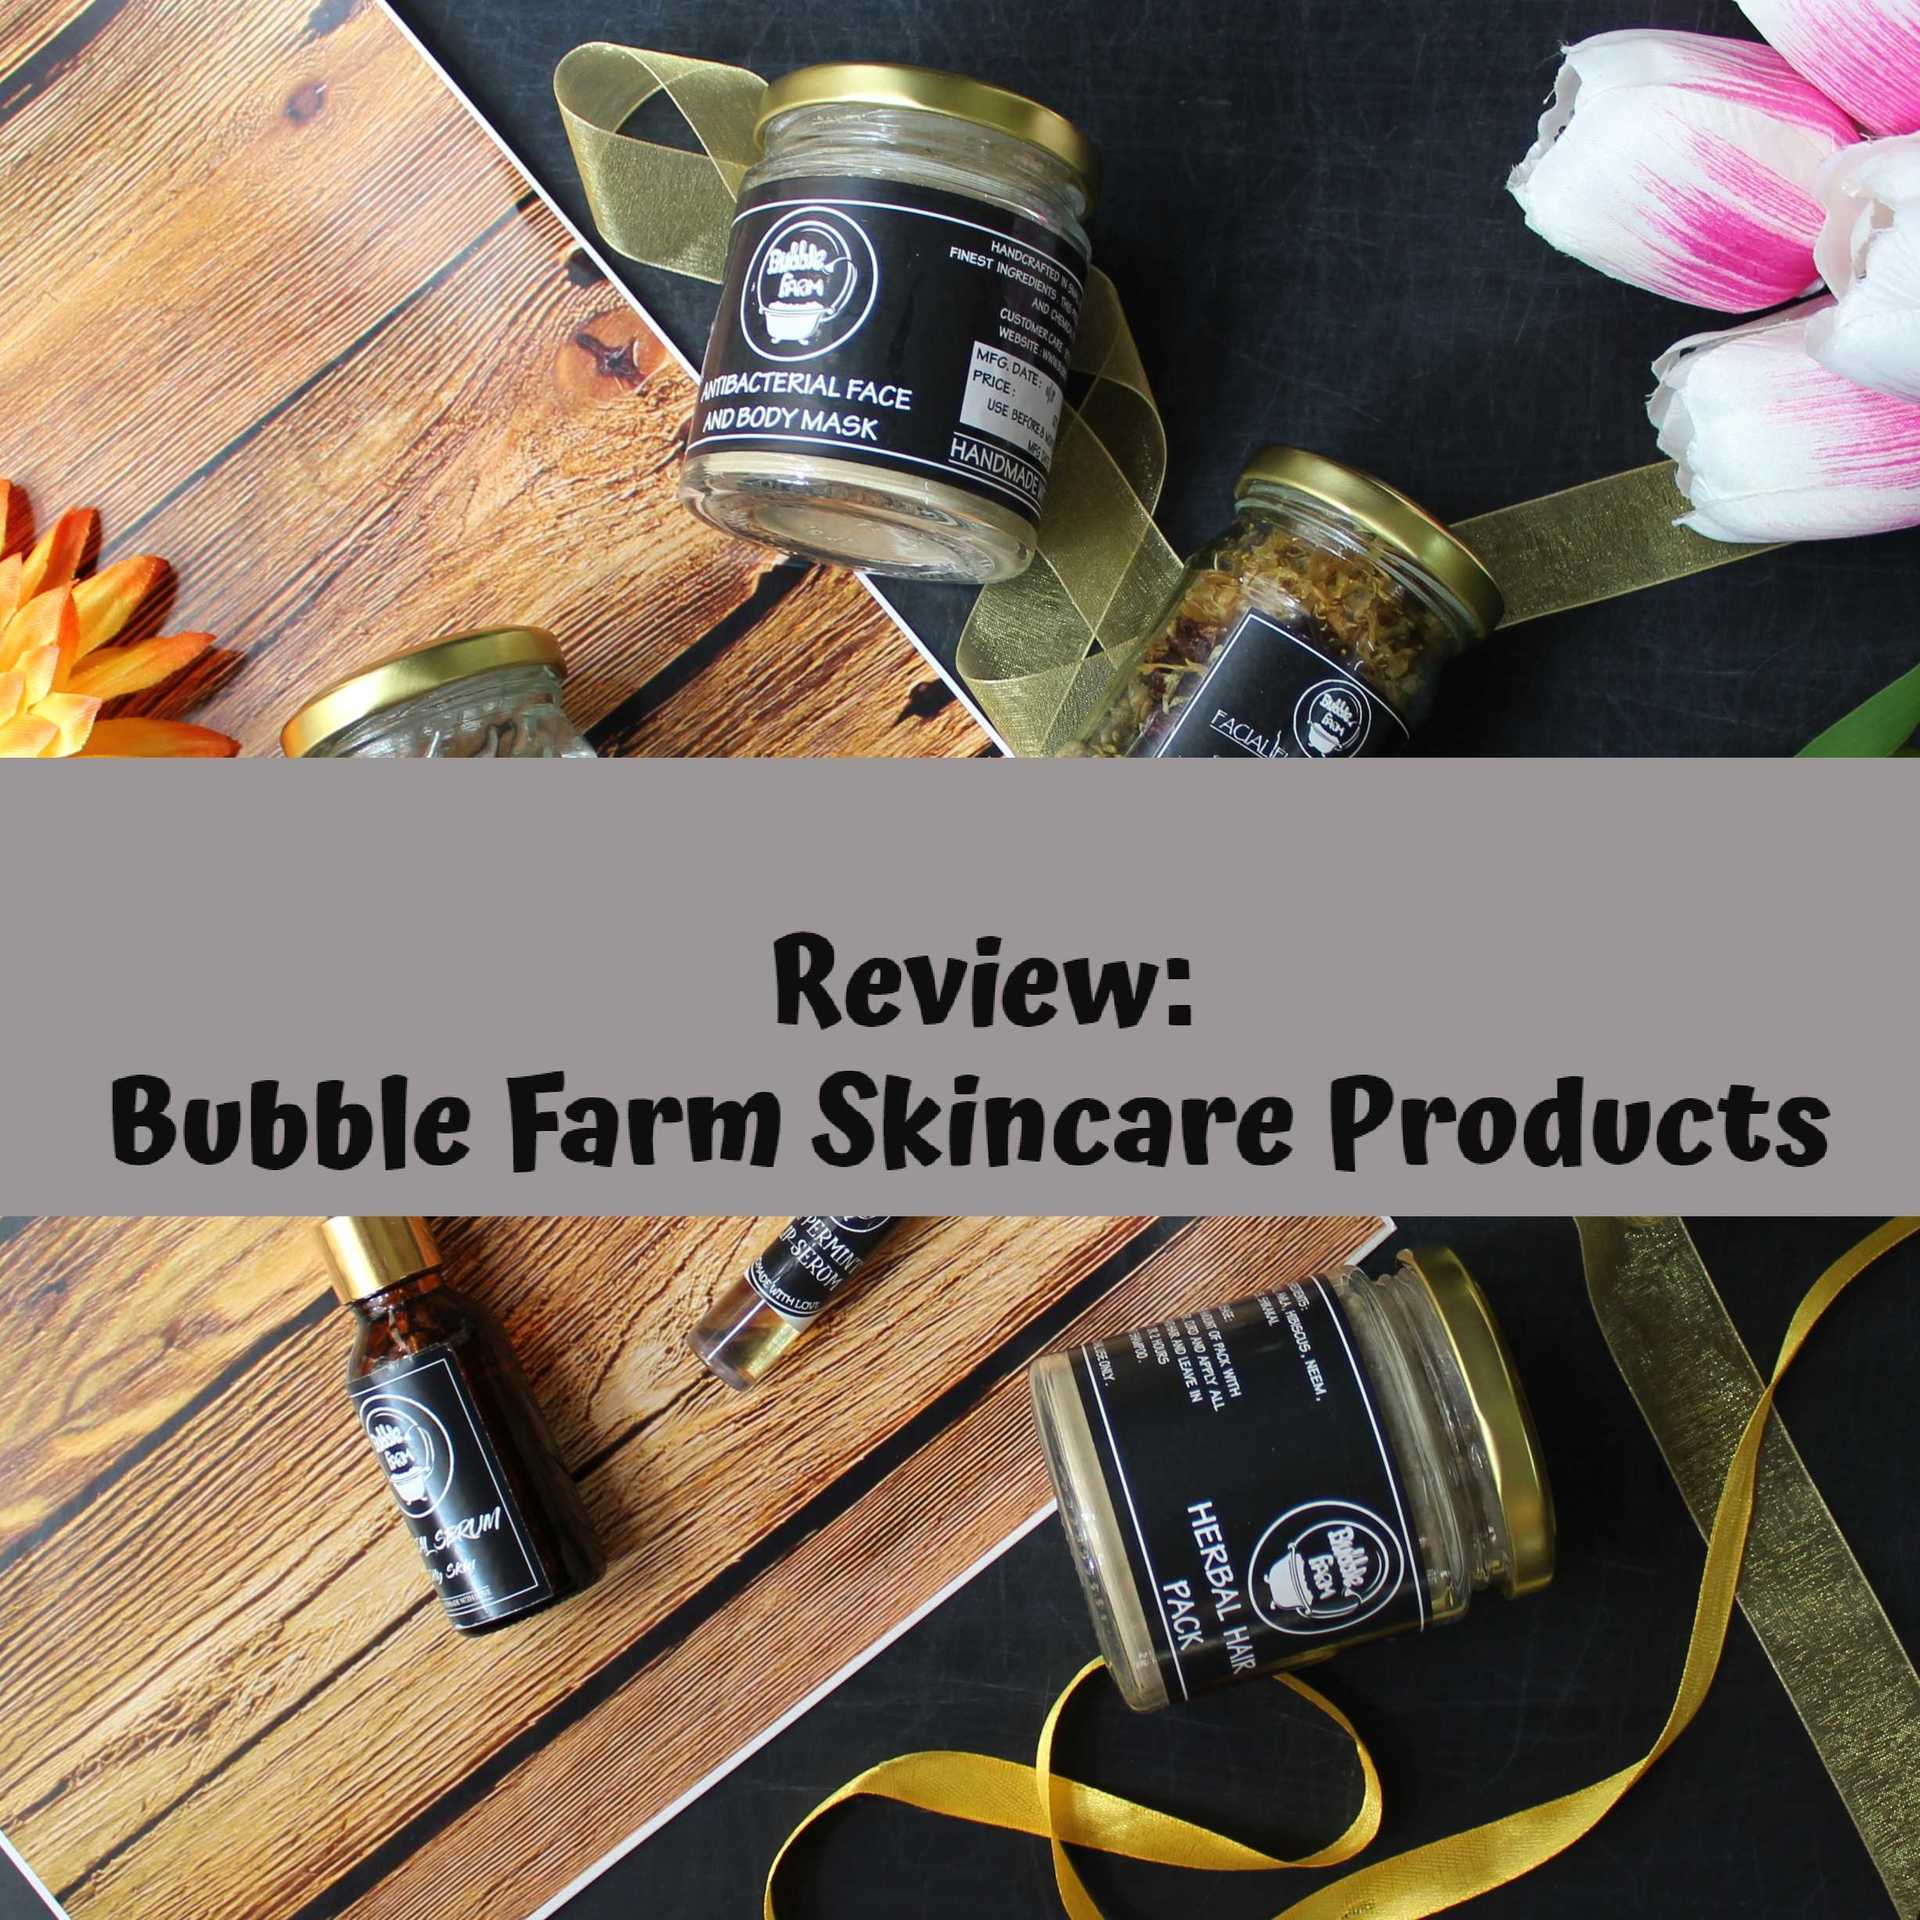 My top skincare products from BubbleFarm image